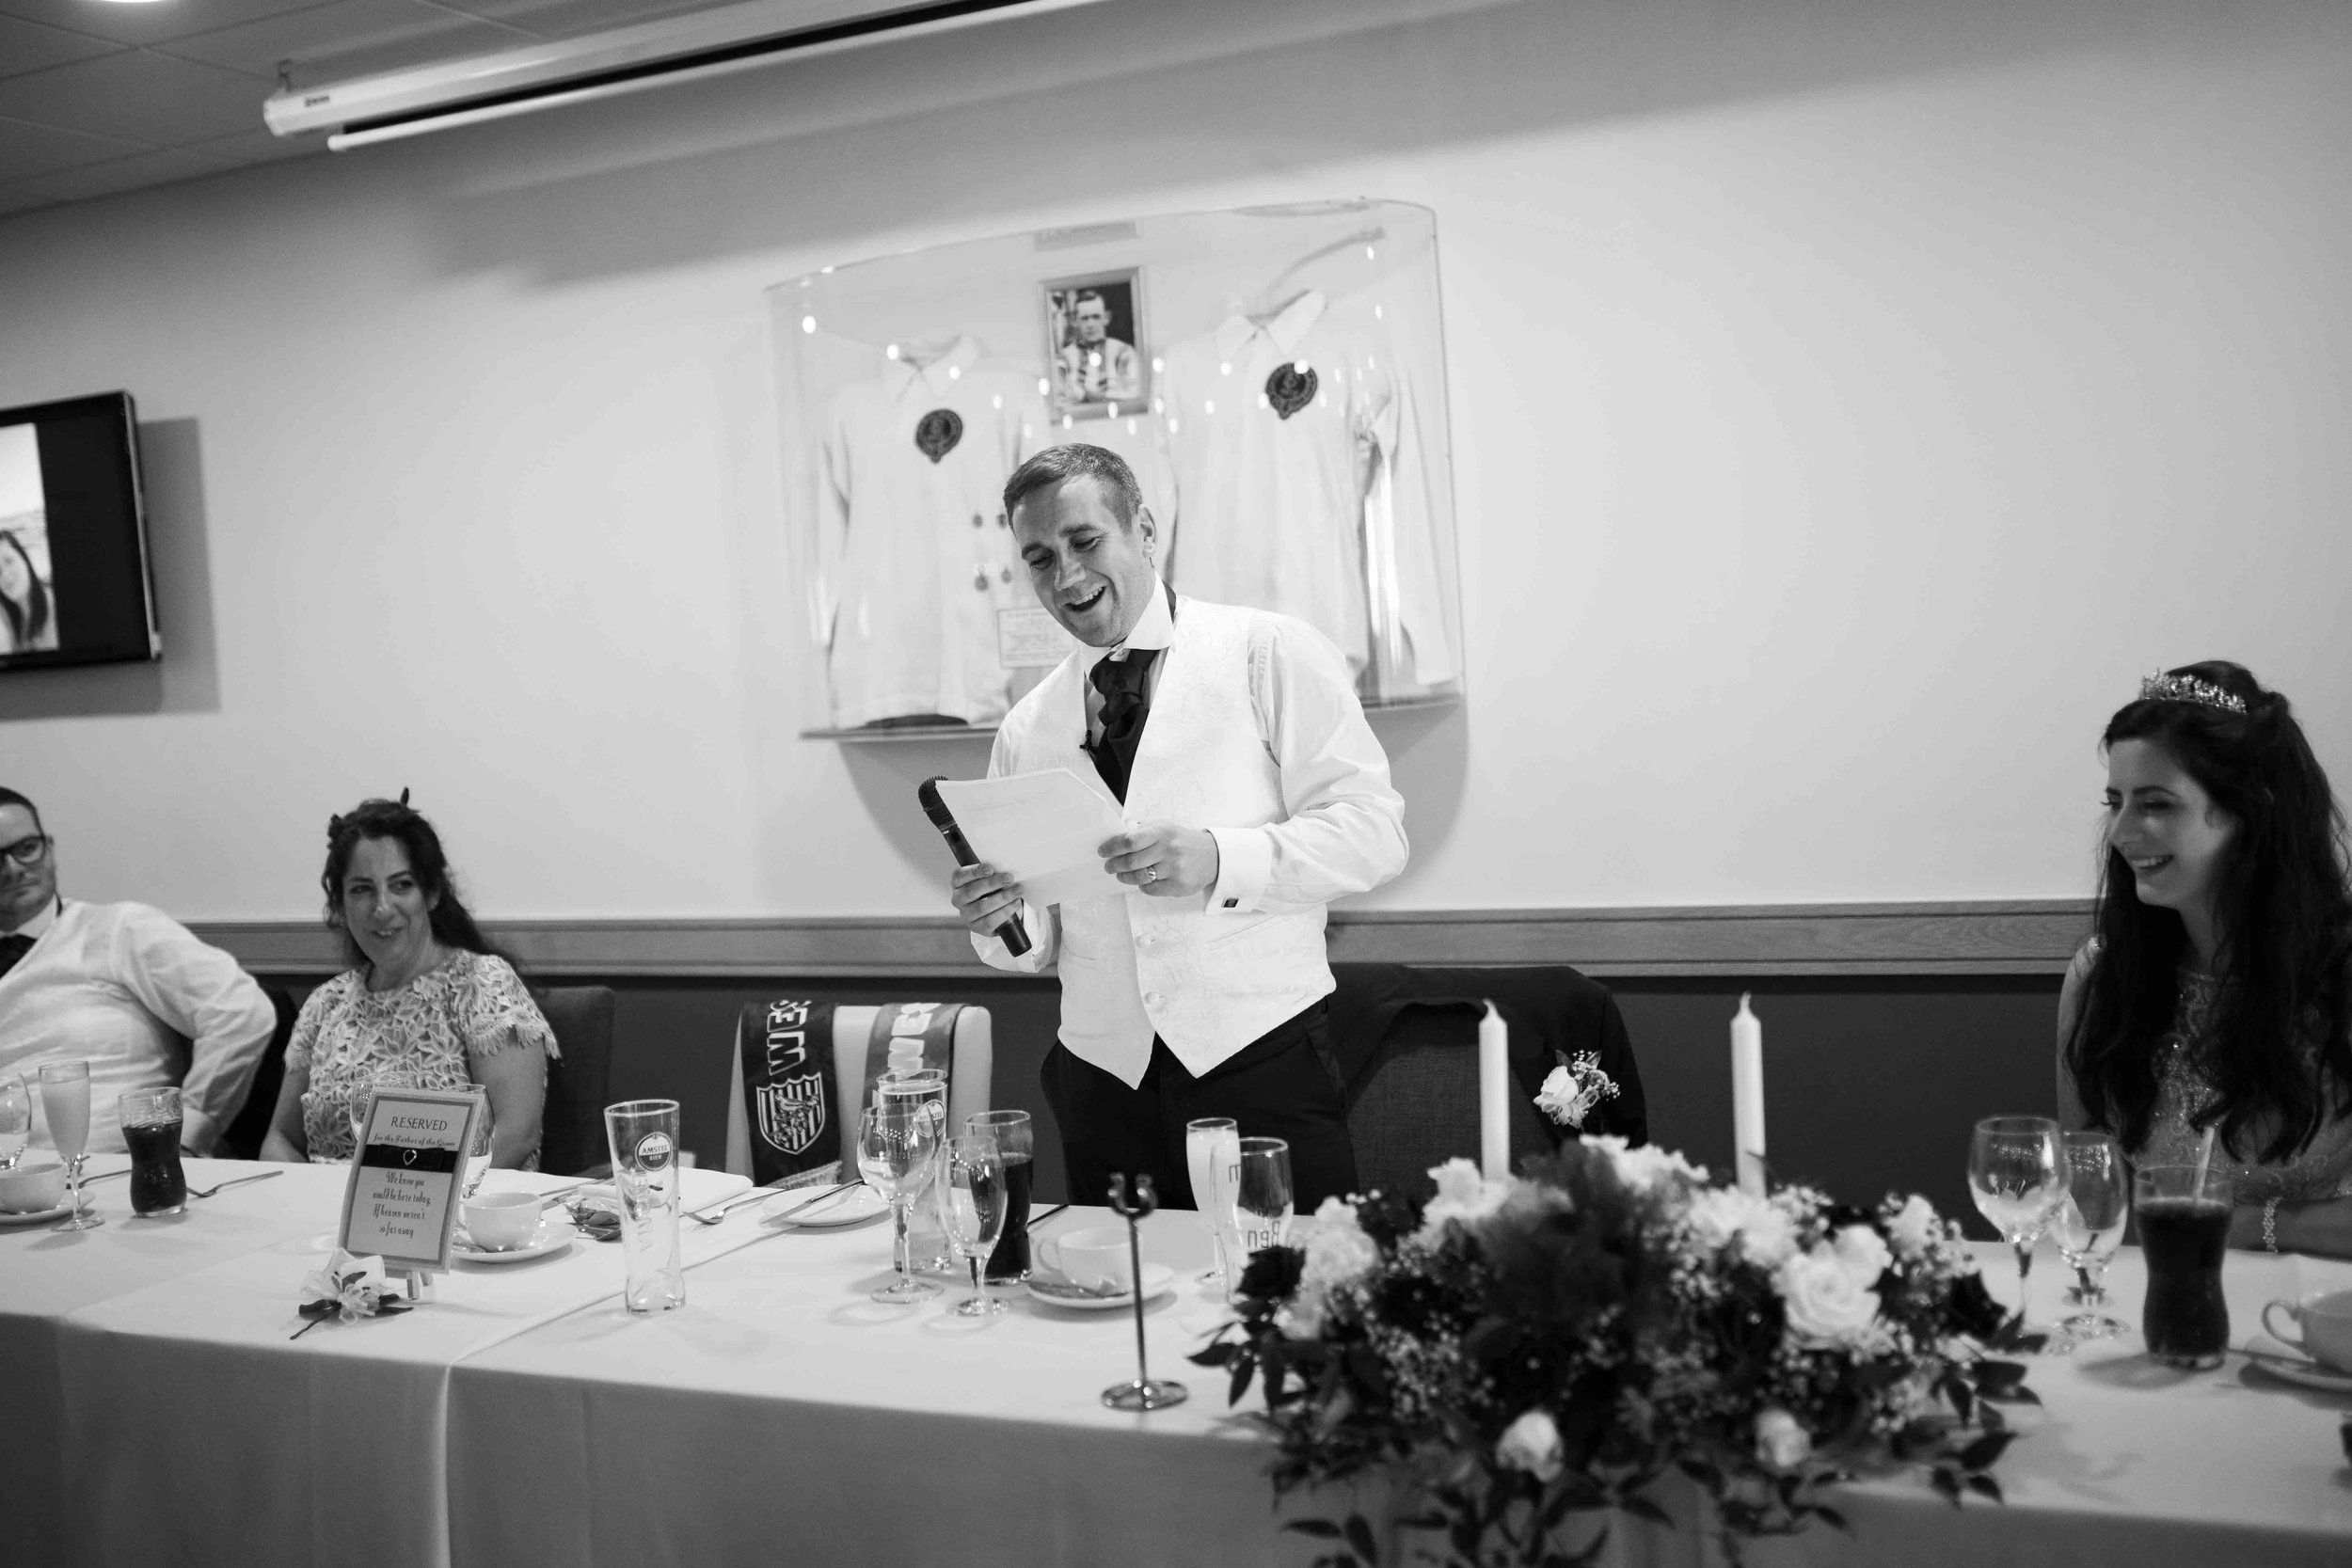 Lea-cooper-photography-wedding-photography-dudley-priory-west-bromwich-albion-football-club-wedding-WBAFC-willenhall-wolverhampton-west-midlands-uk-25.JPG